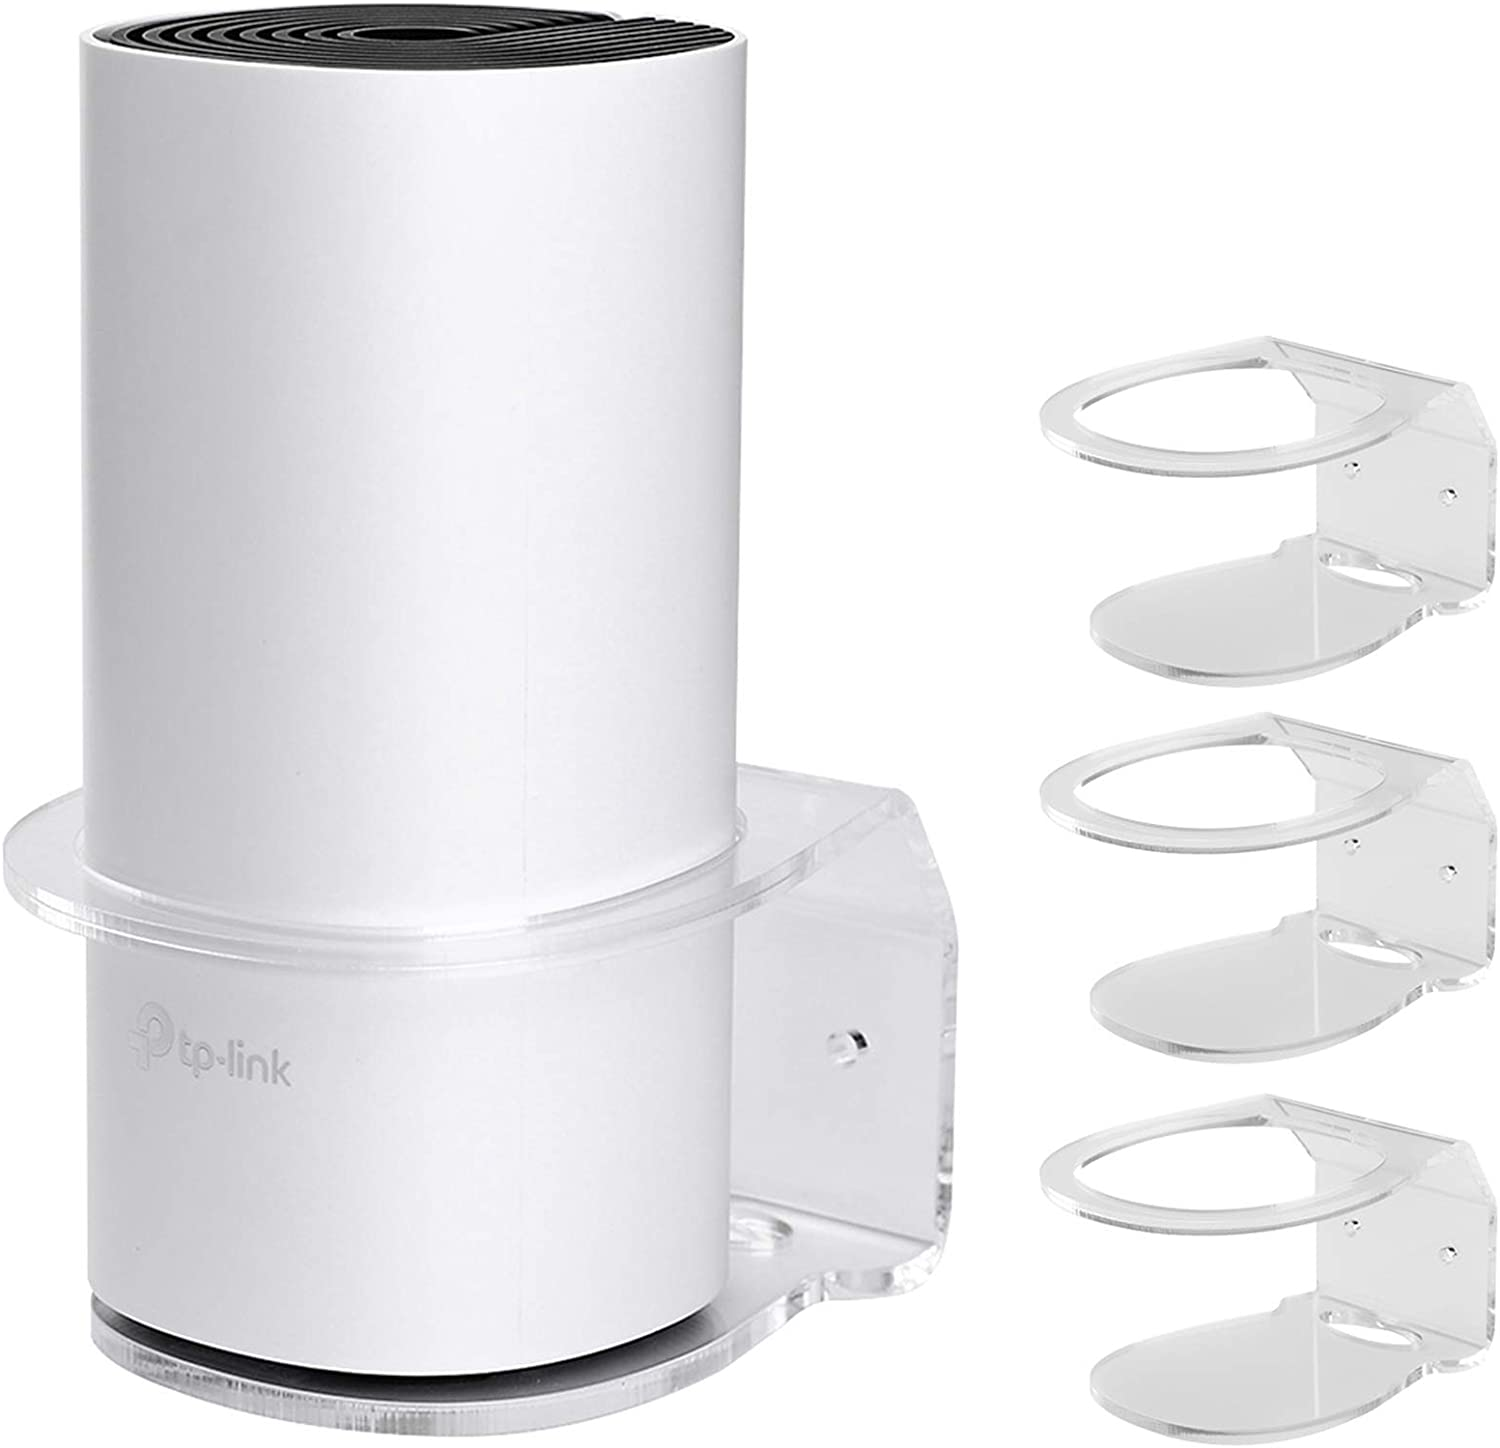 Holaca Wall Mount For Tp Link Deco M4 Whole Home Mesh Computers Accessories